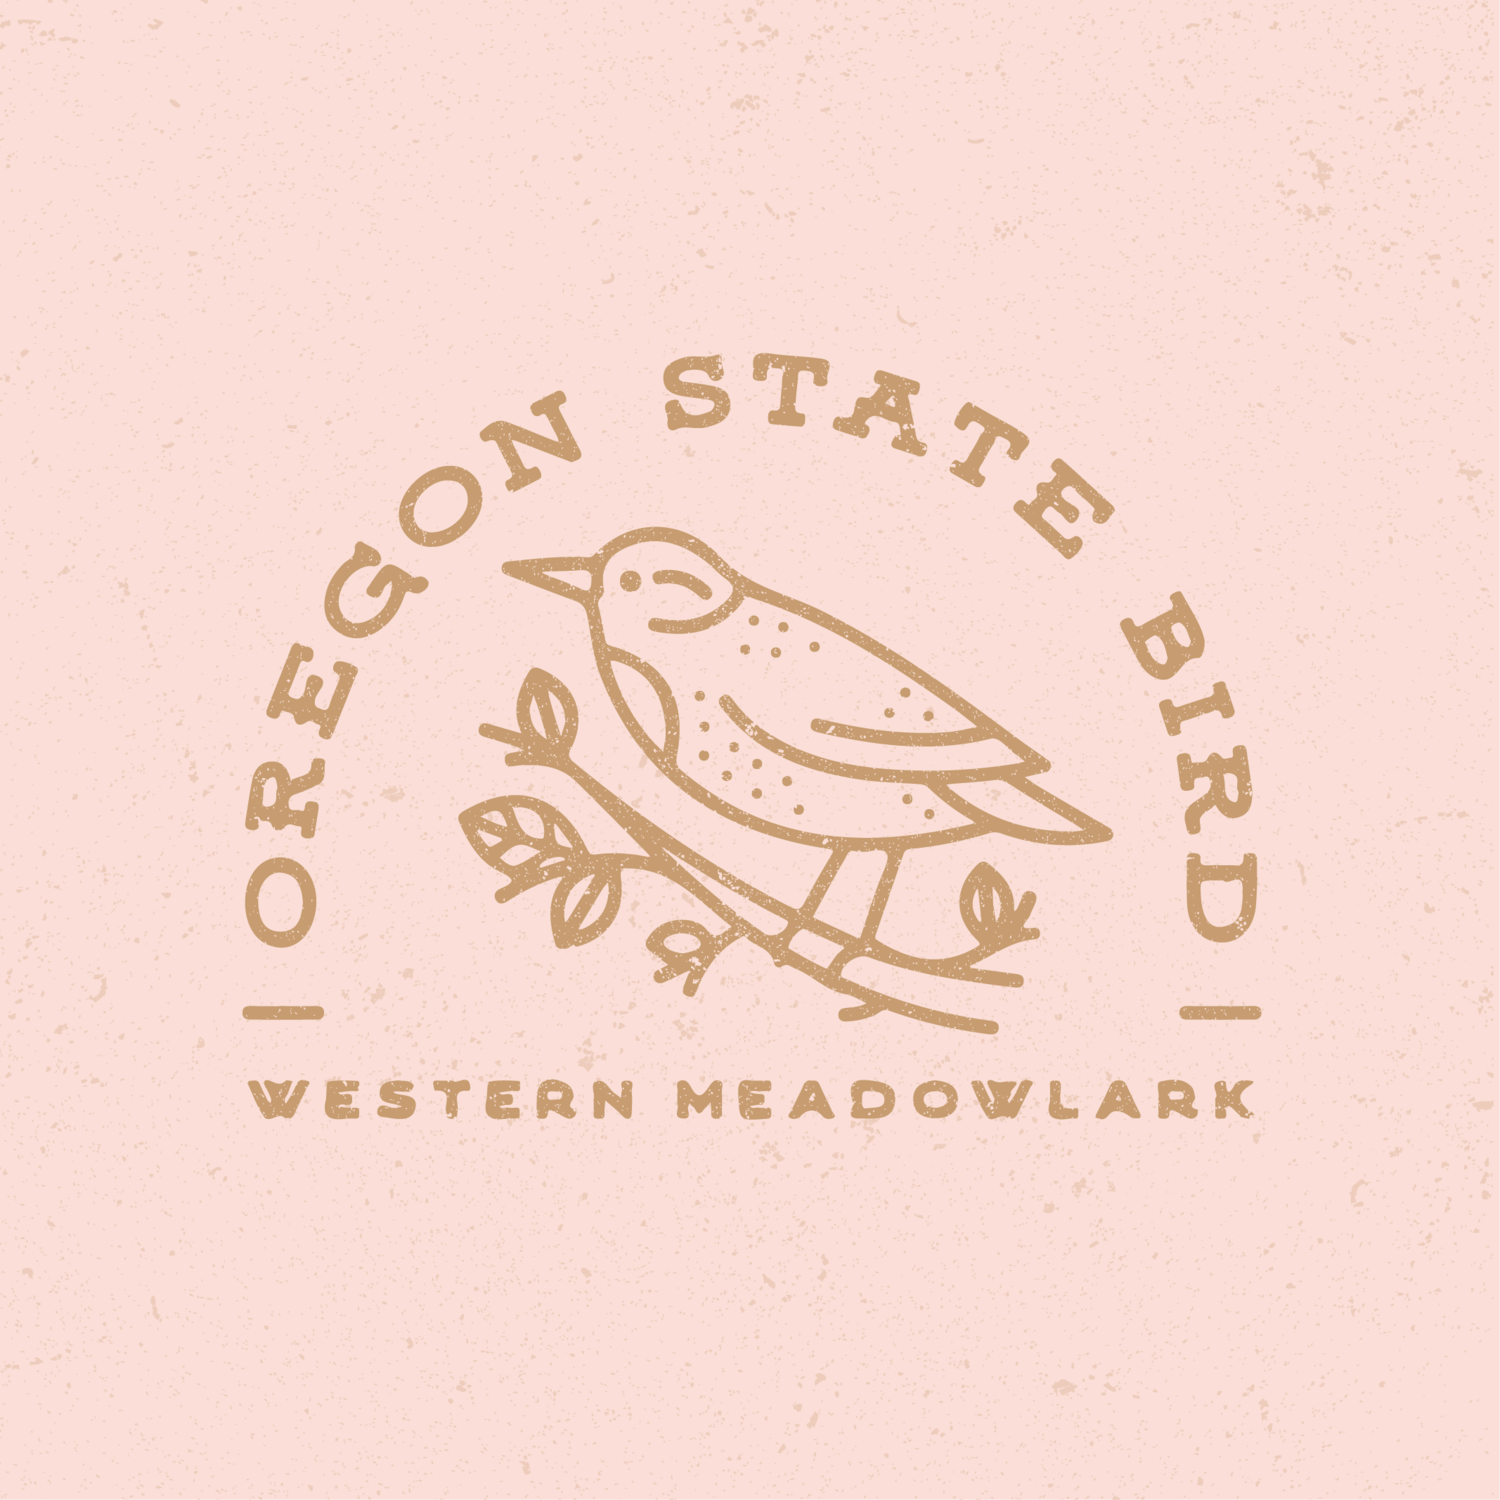 state_bird-01.png